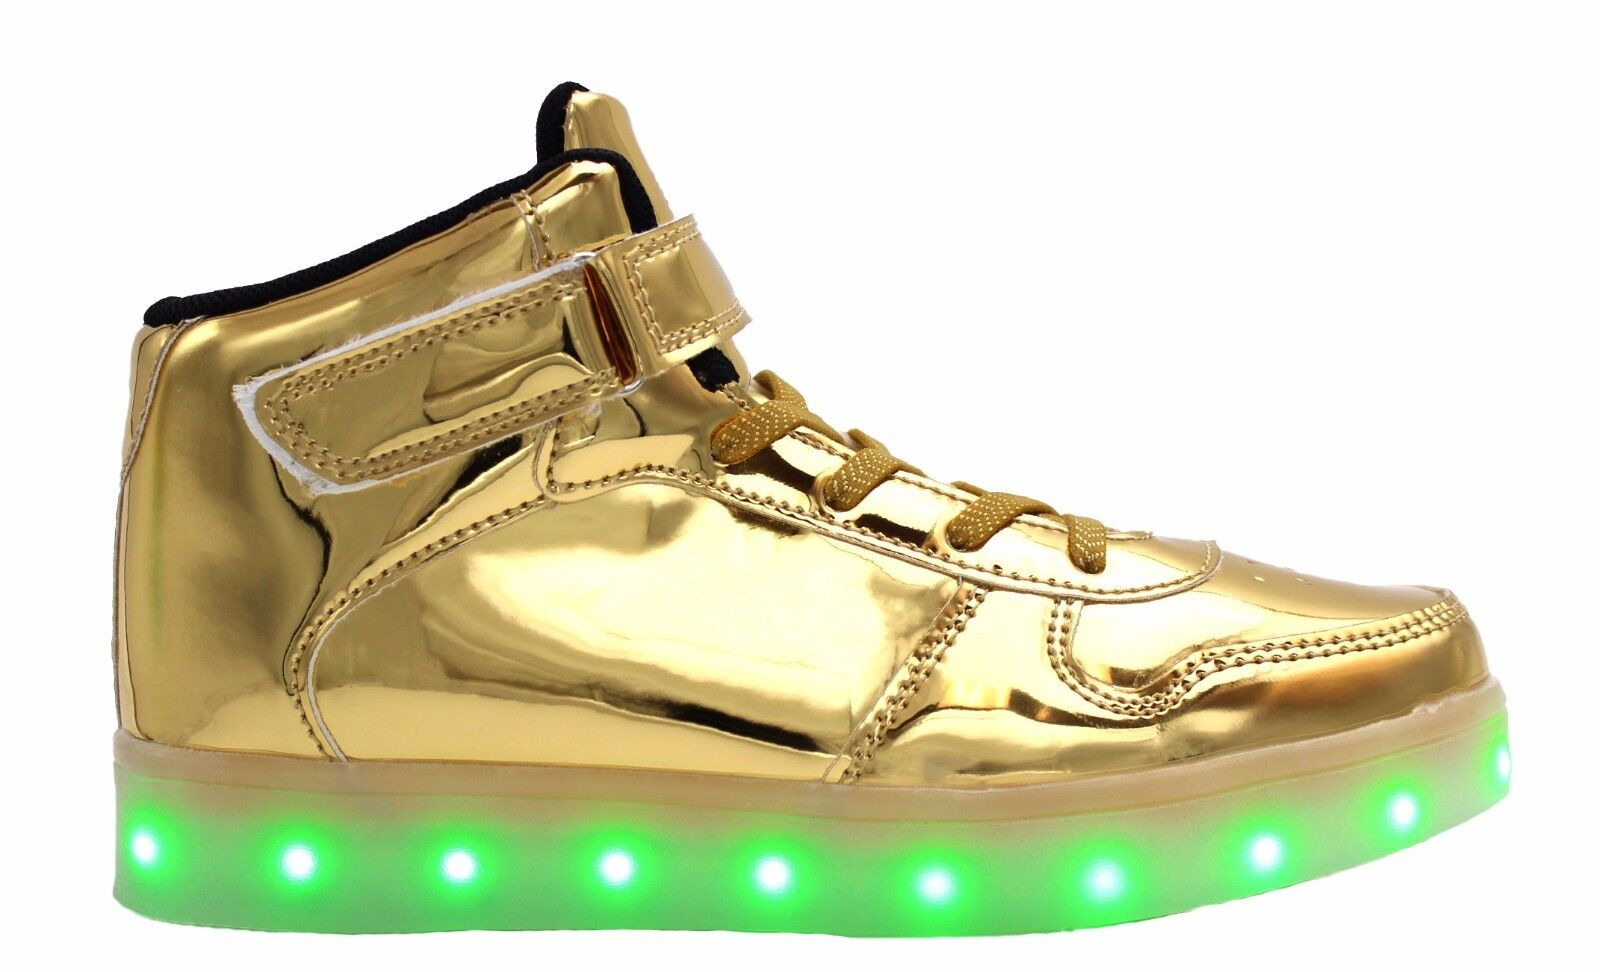 Details about Galaxy LED Shoes Light Up High Top Strap & Lace Women's Sneakers (Shiny Gold)